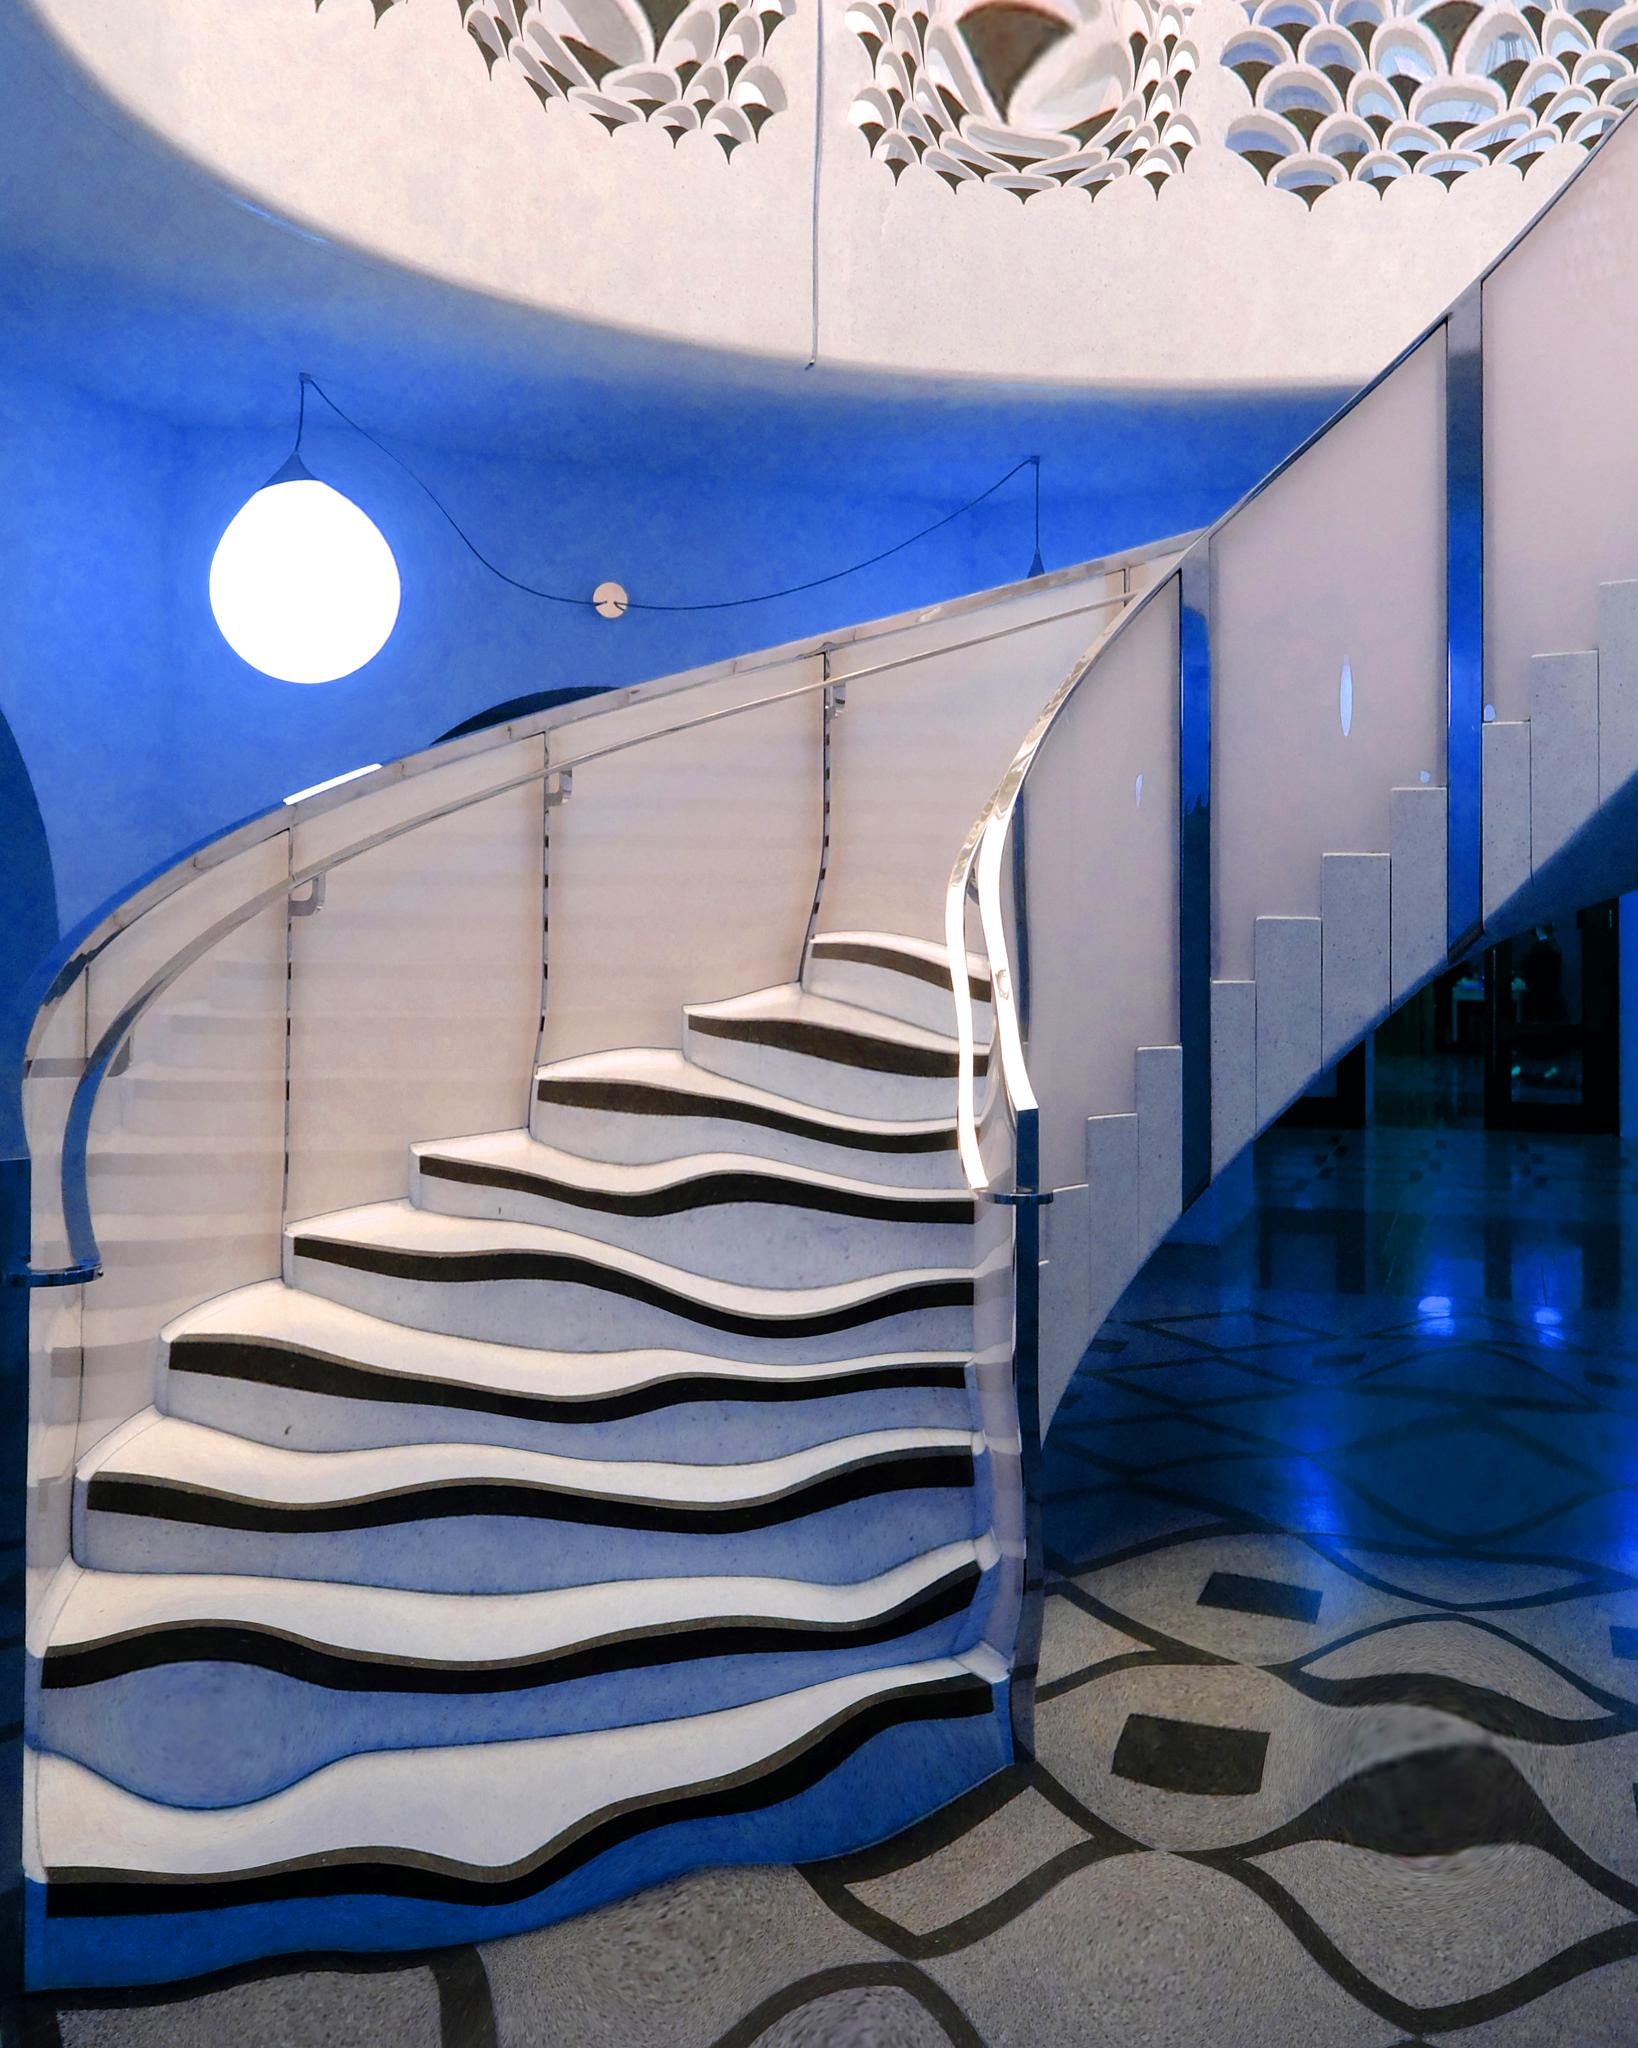 Liquid stairs by Mike Morton